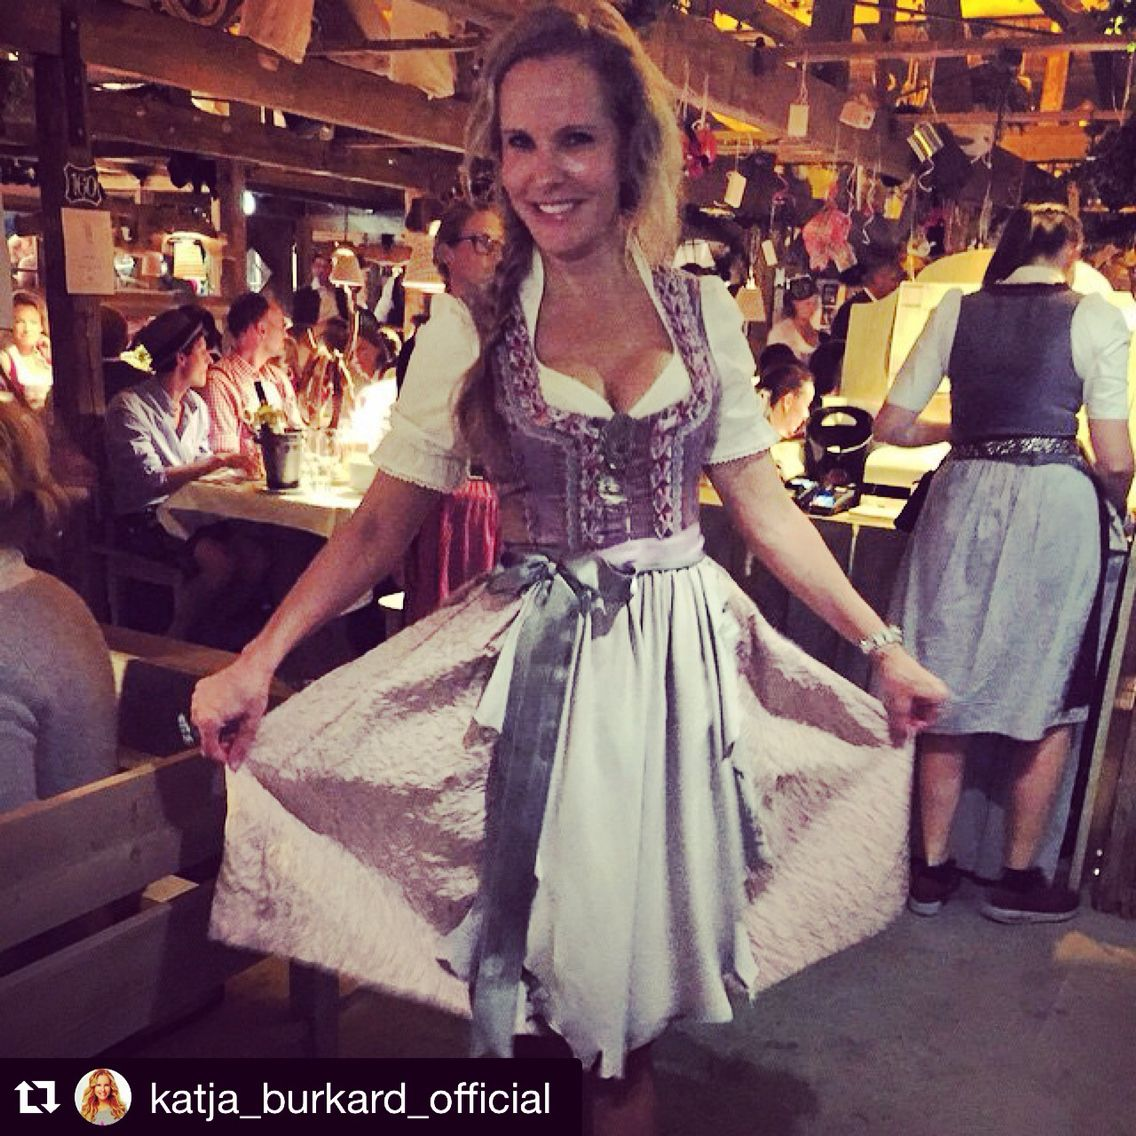 Katja Burkard Wearing Maindirndl Have A Look On Www Maindirndl Com Wiesn Kaferswiesnschanke Maindirndl Dirndl Tradition Dirndl Lang Dirndl Wiesn